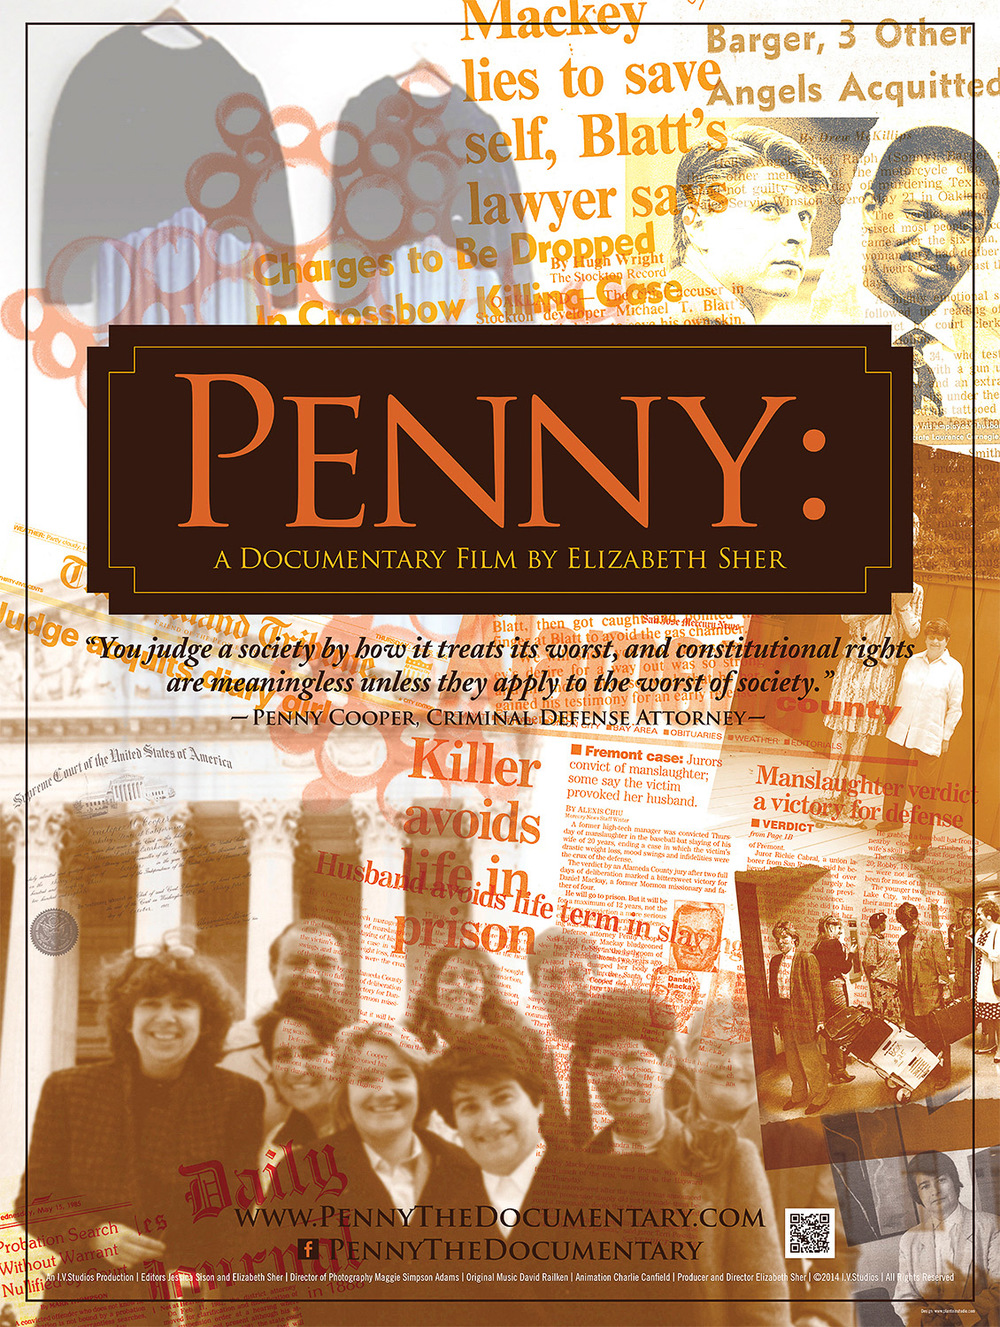 Poster for  PENNY  © 2015 a 30 minute documentary by Elizabeth Sher